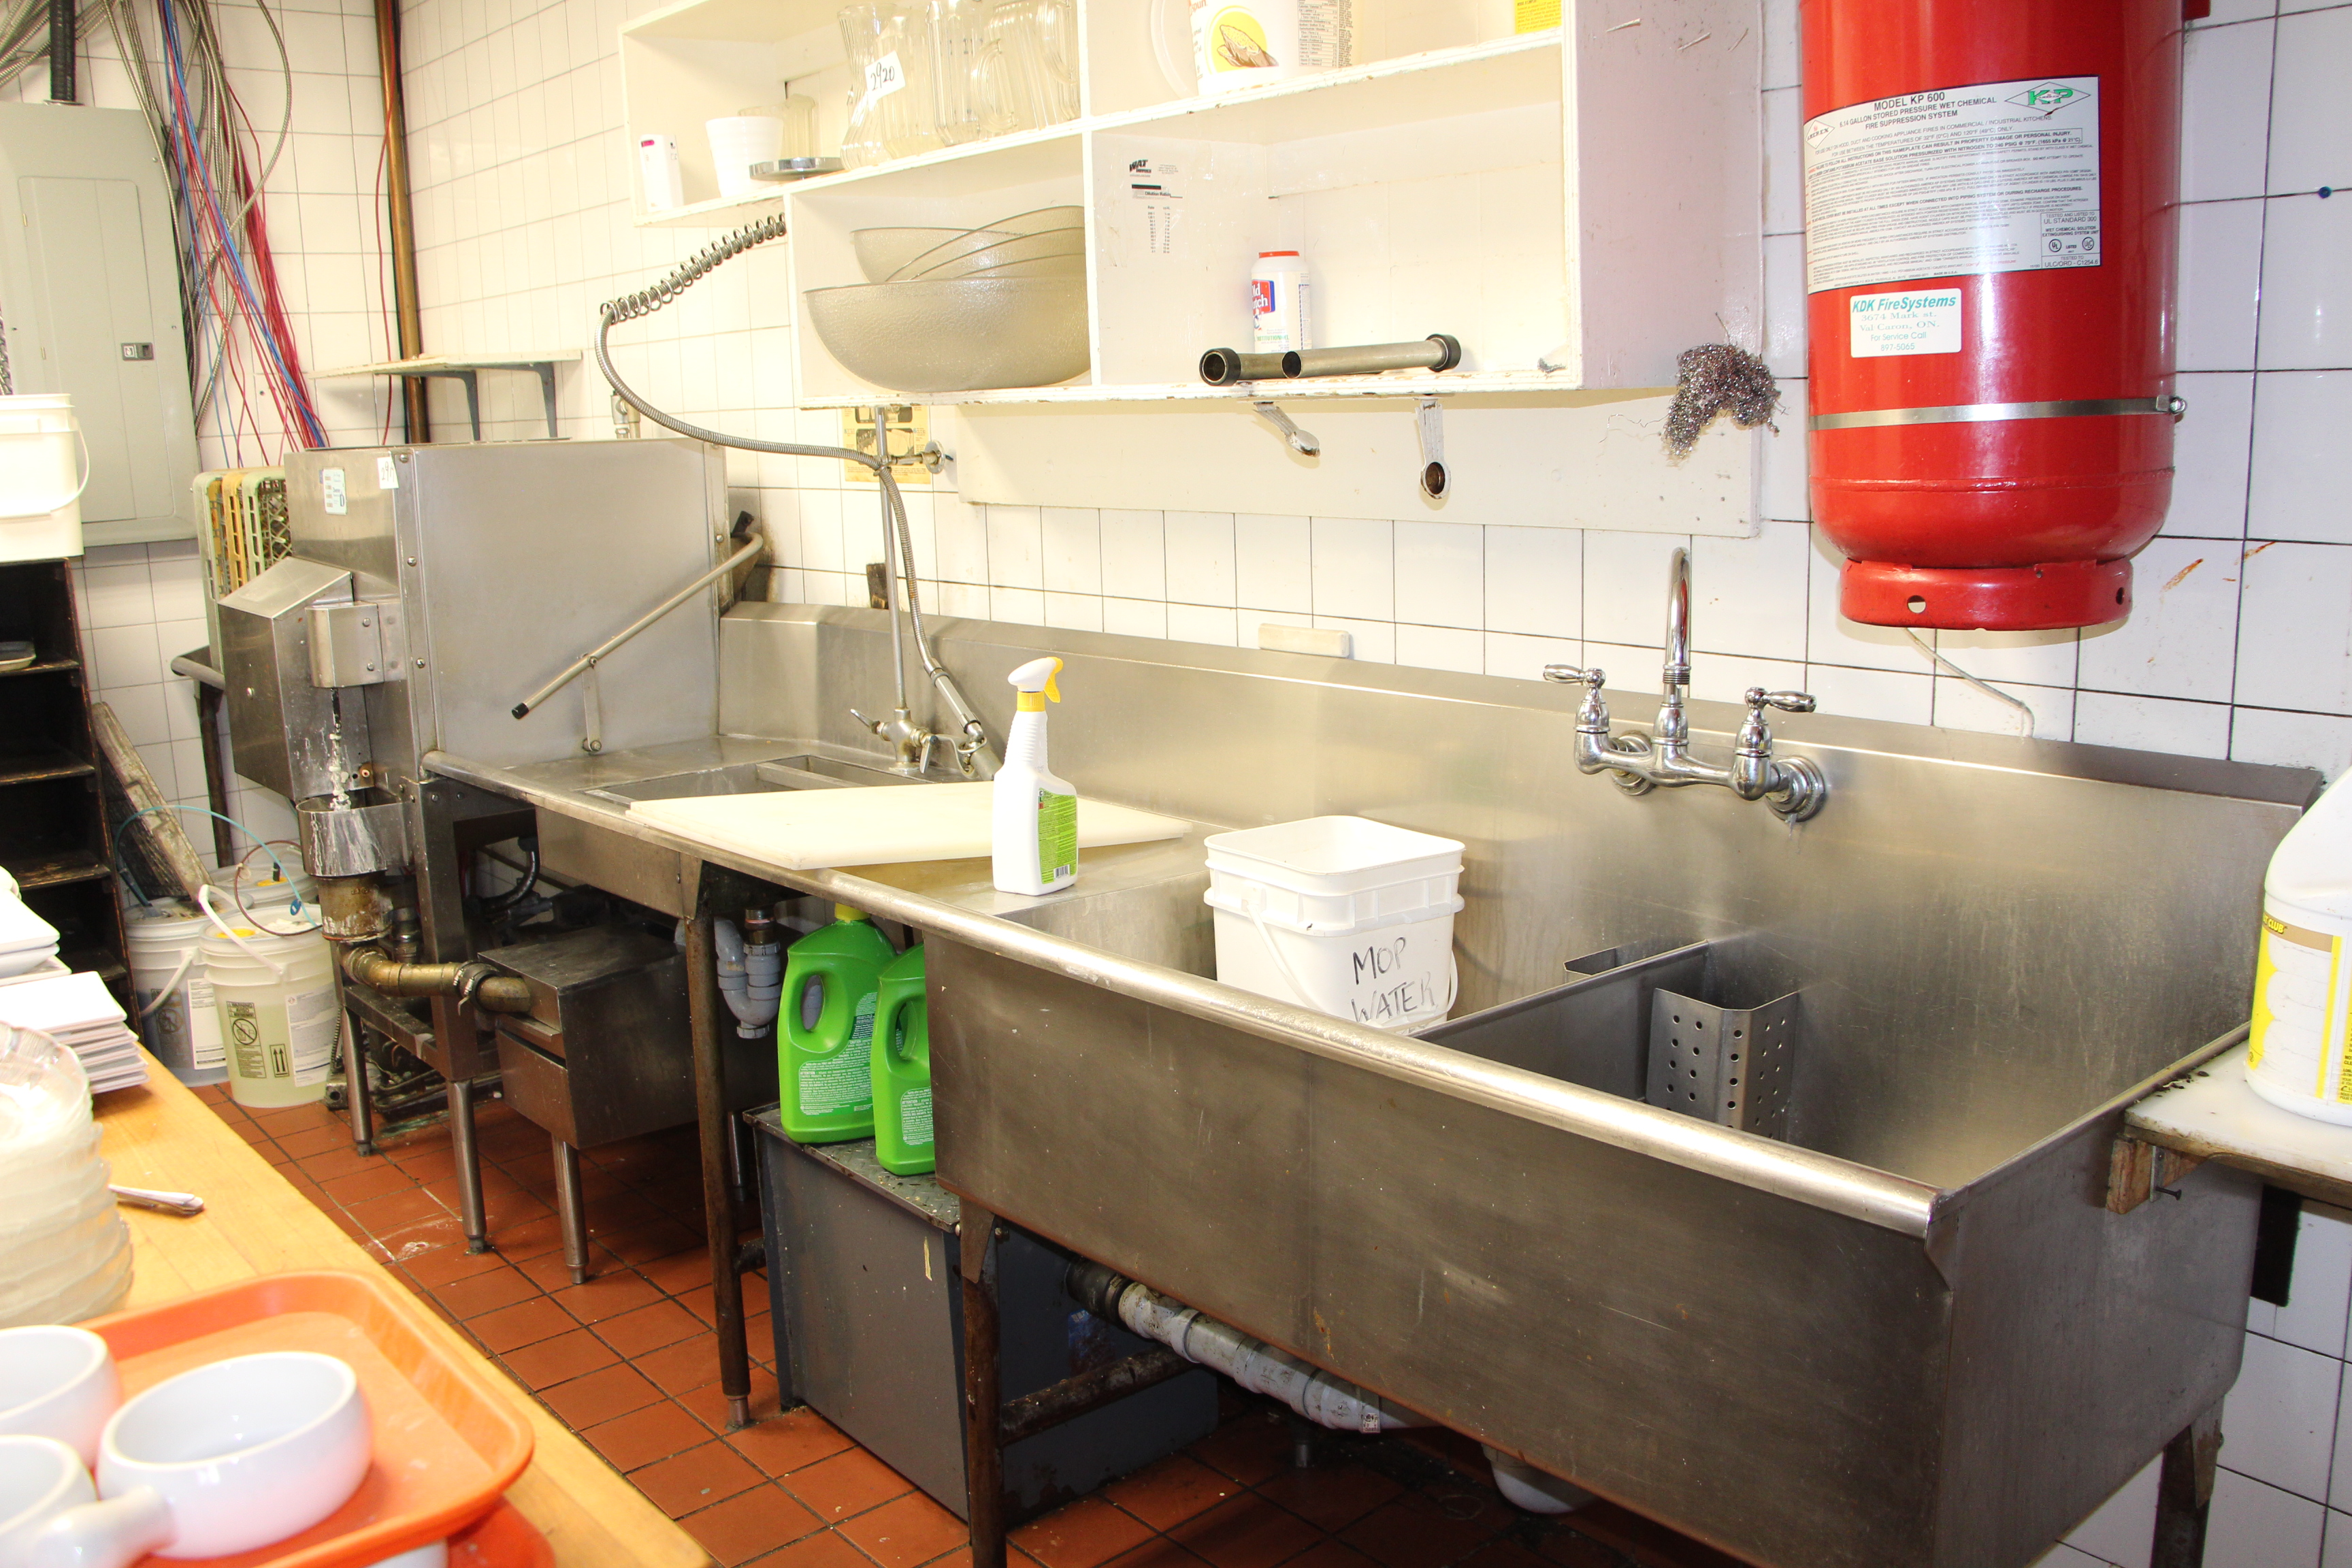 Lot 2919 - Diversey commerical dish washing machine c/w S/S intake table, S/S outflow table with sprayer and